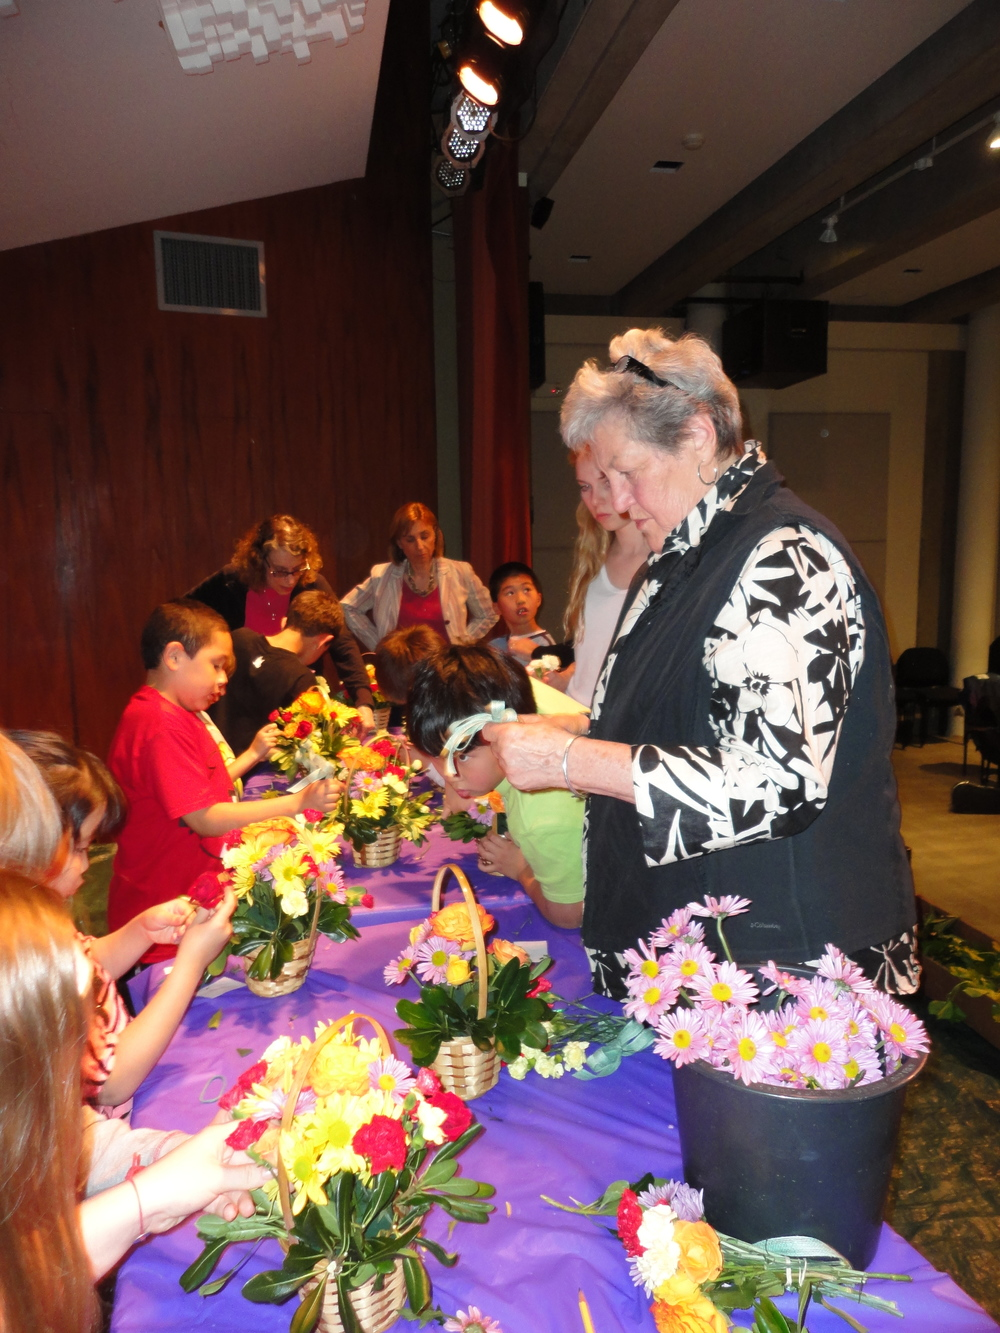 After school program - students creating Mother's Day floral craft with local florist.